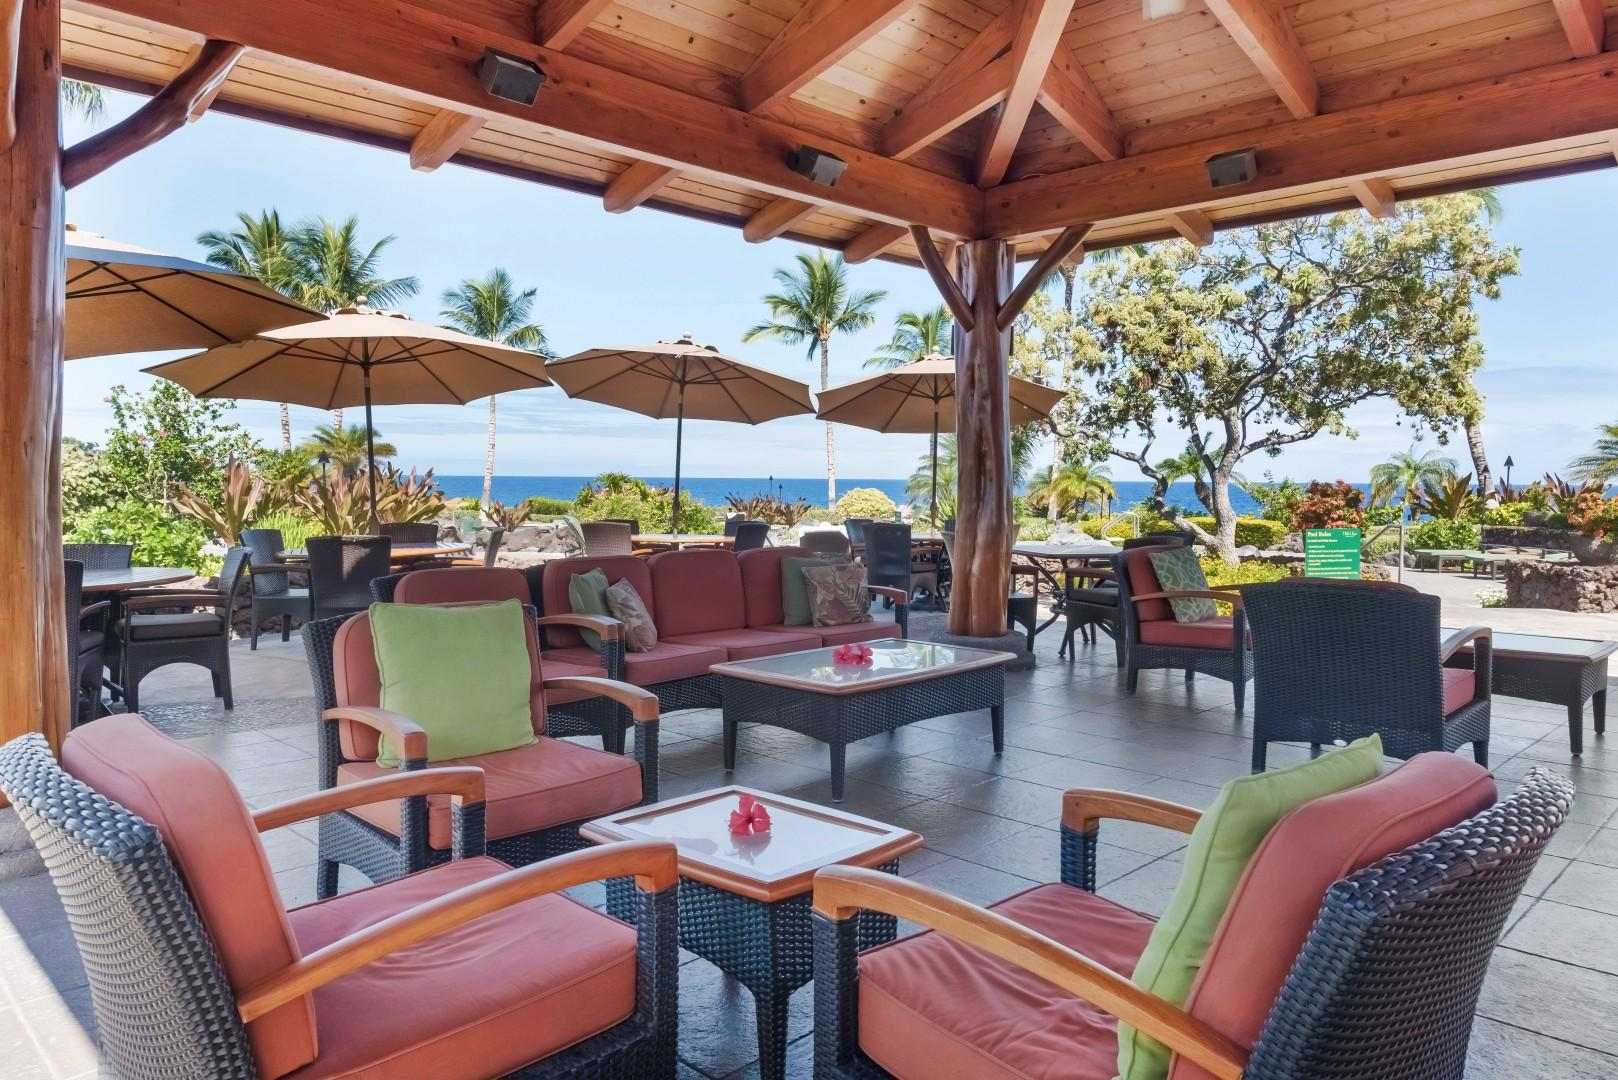 Lounge in comfort at Hali'i Kai's private amenity center